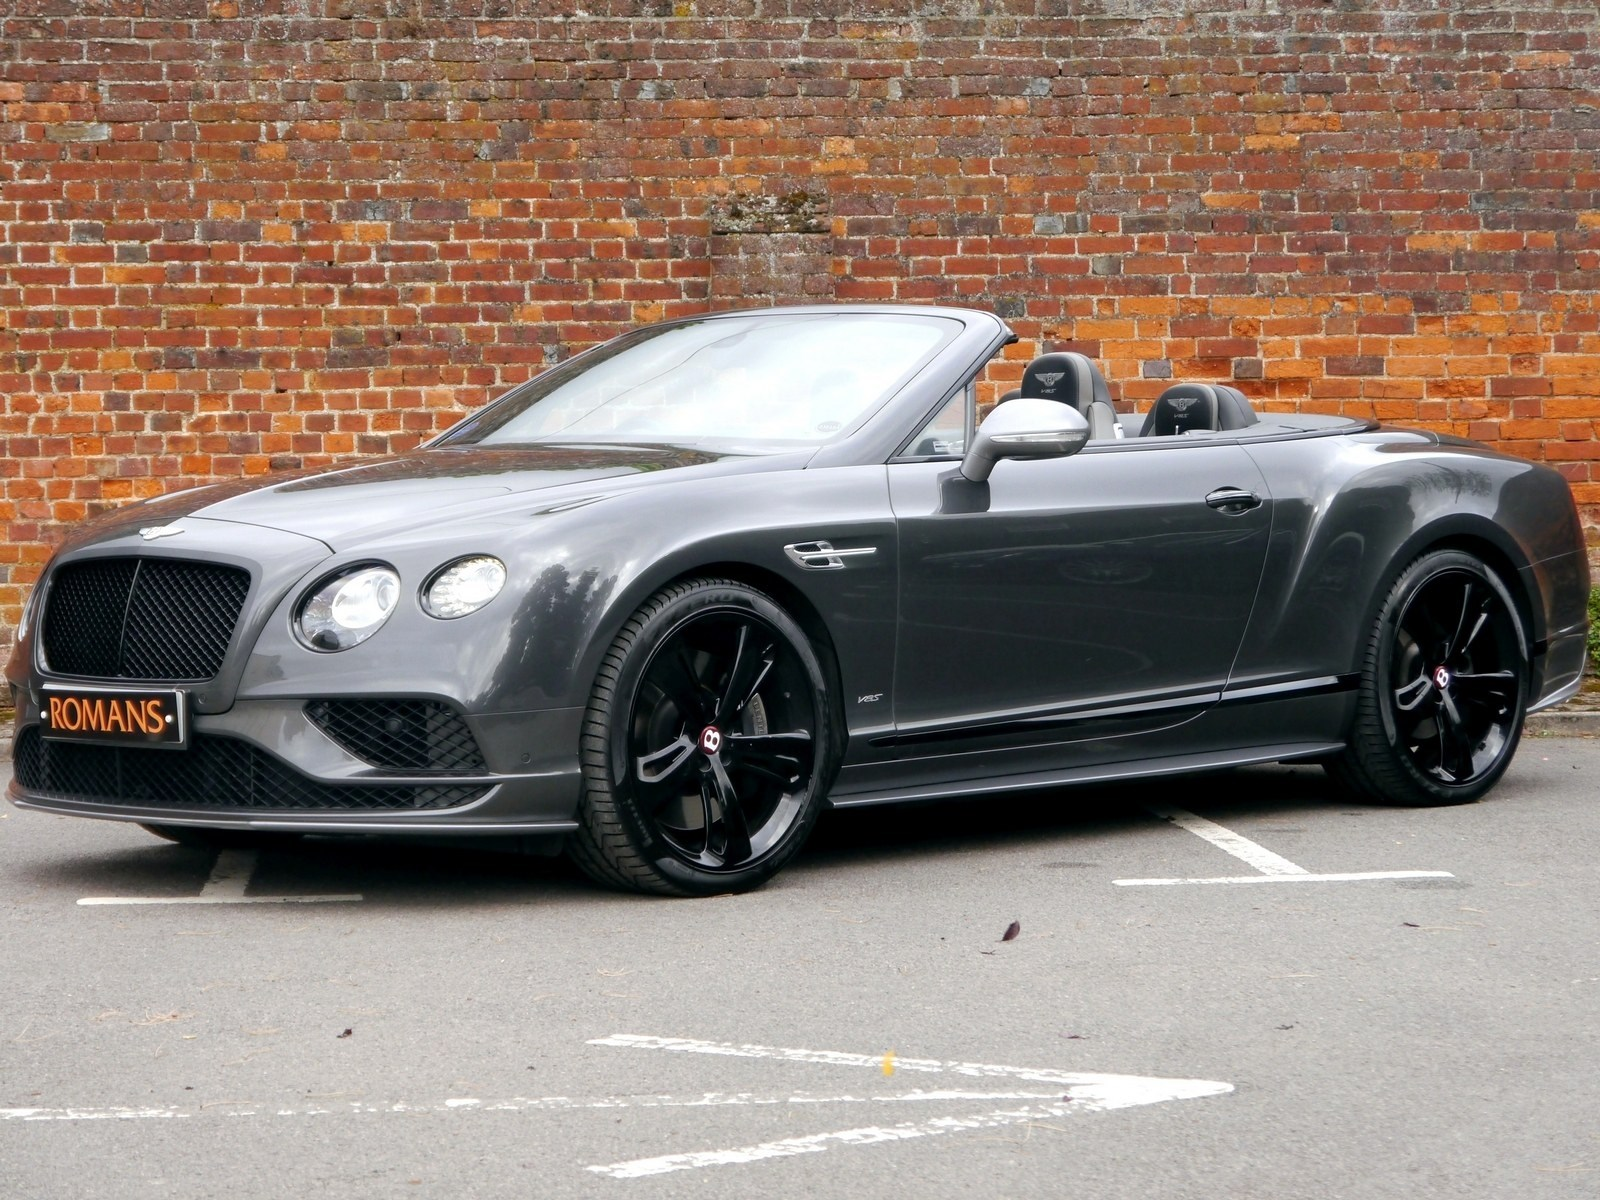 Bentley Continental Gtc 4 0 V8 S Auto Black Edition Mulliner Driving Spec All Season Package For Sale